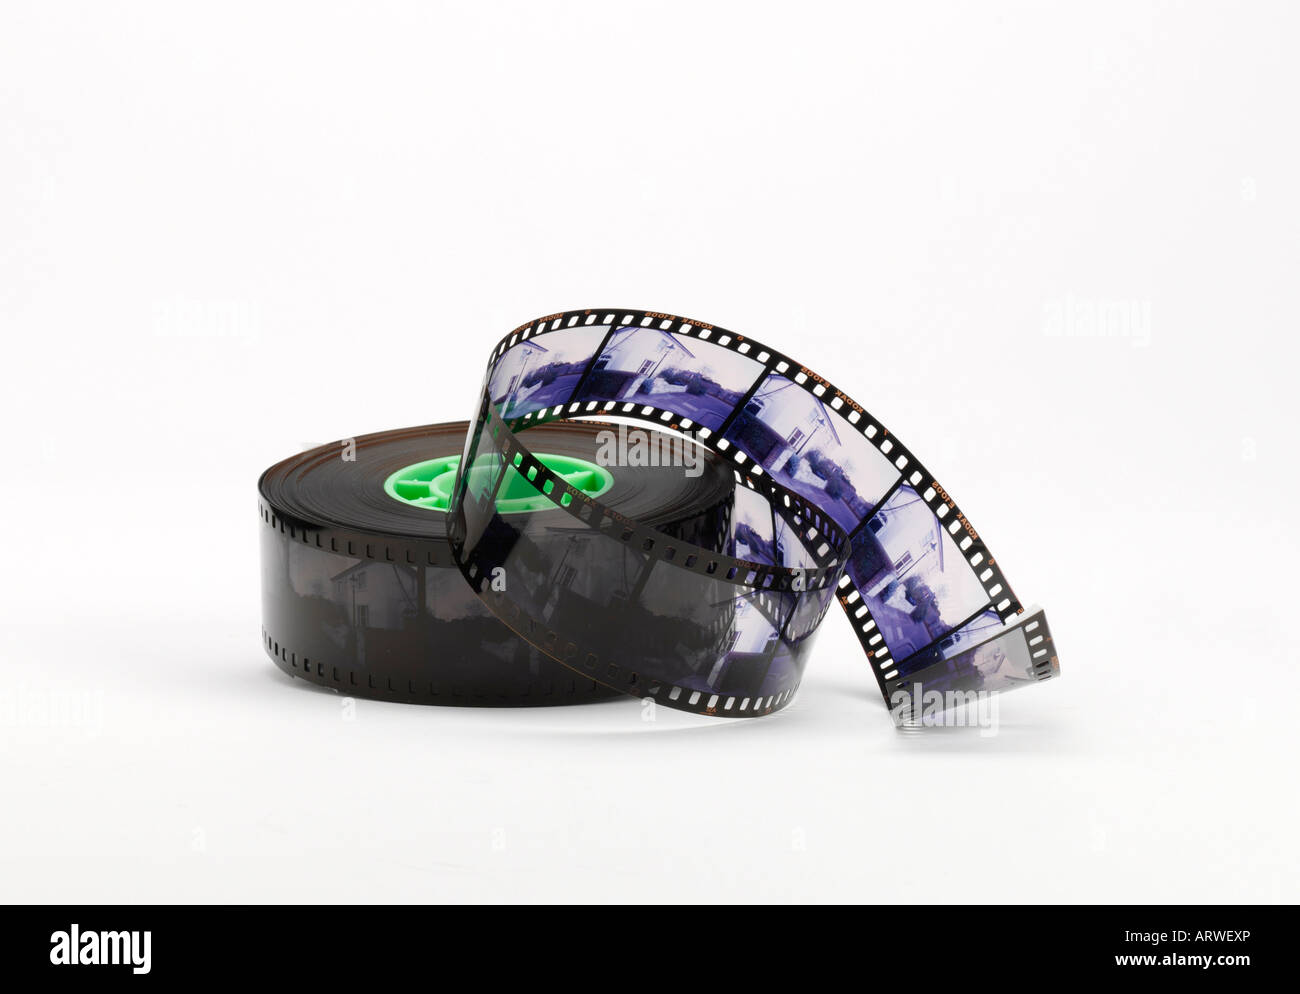 Reel of film - Stock Image